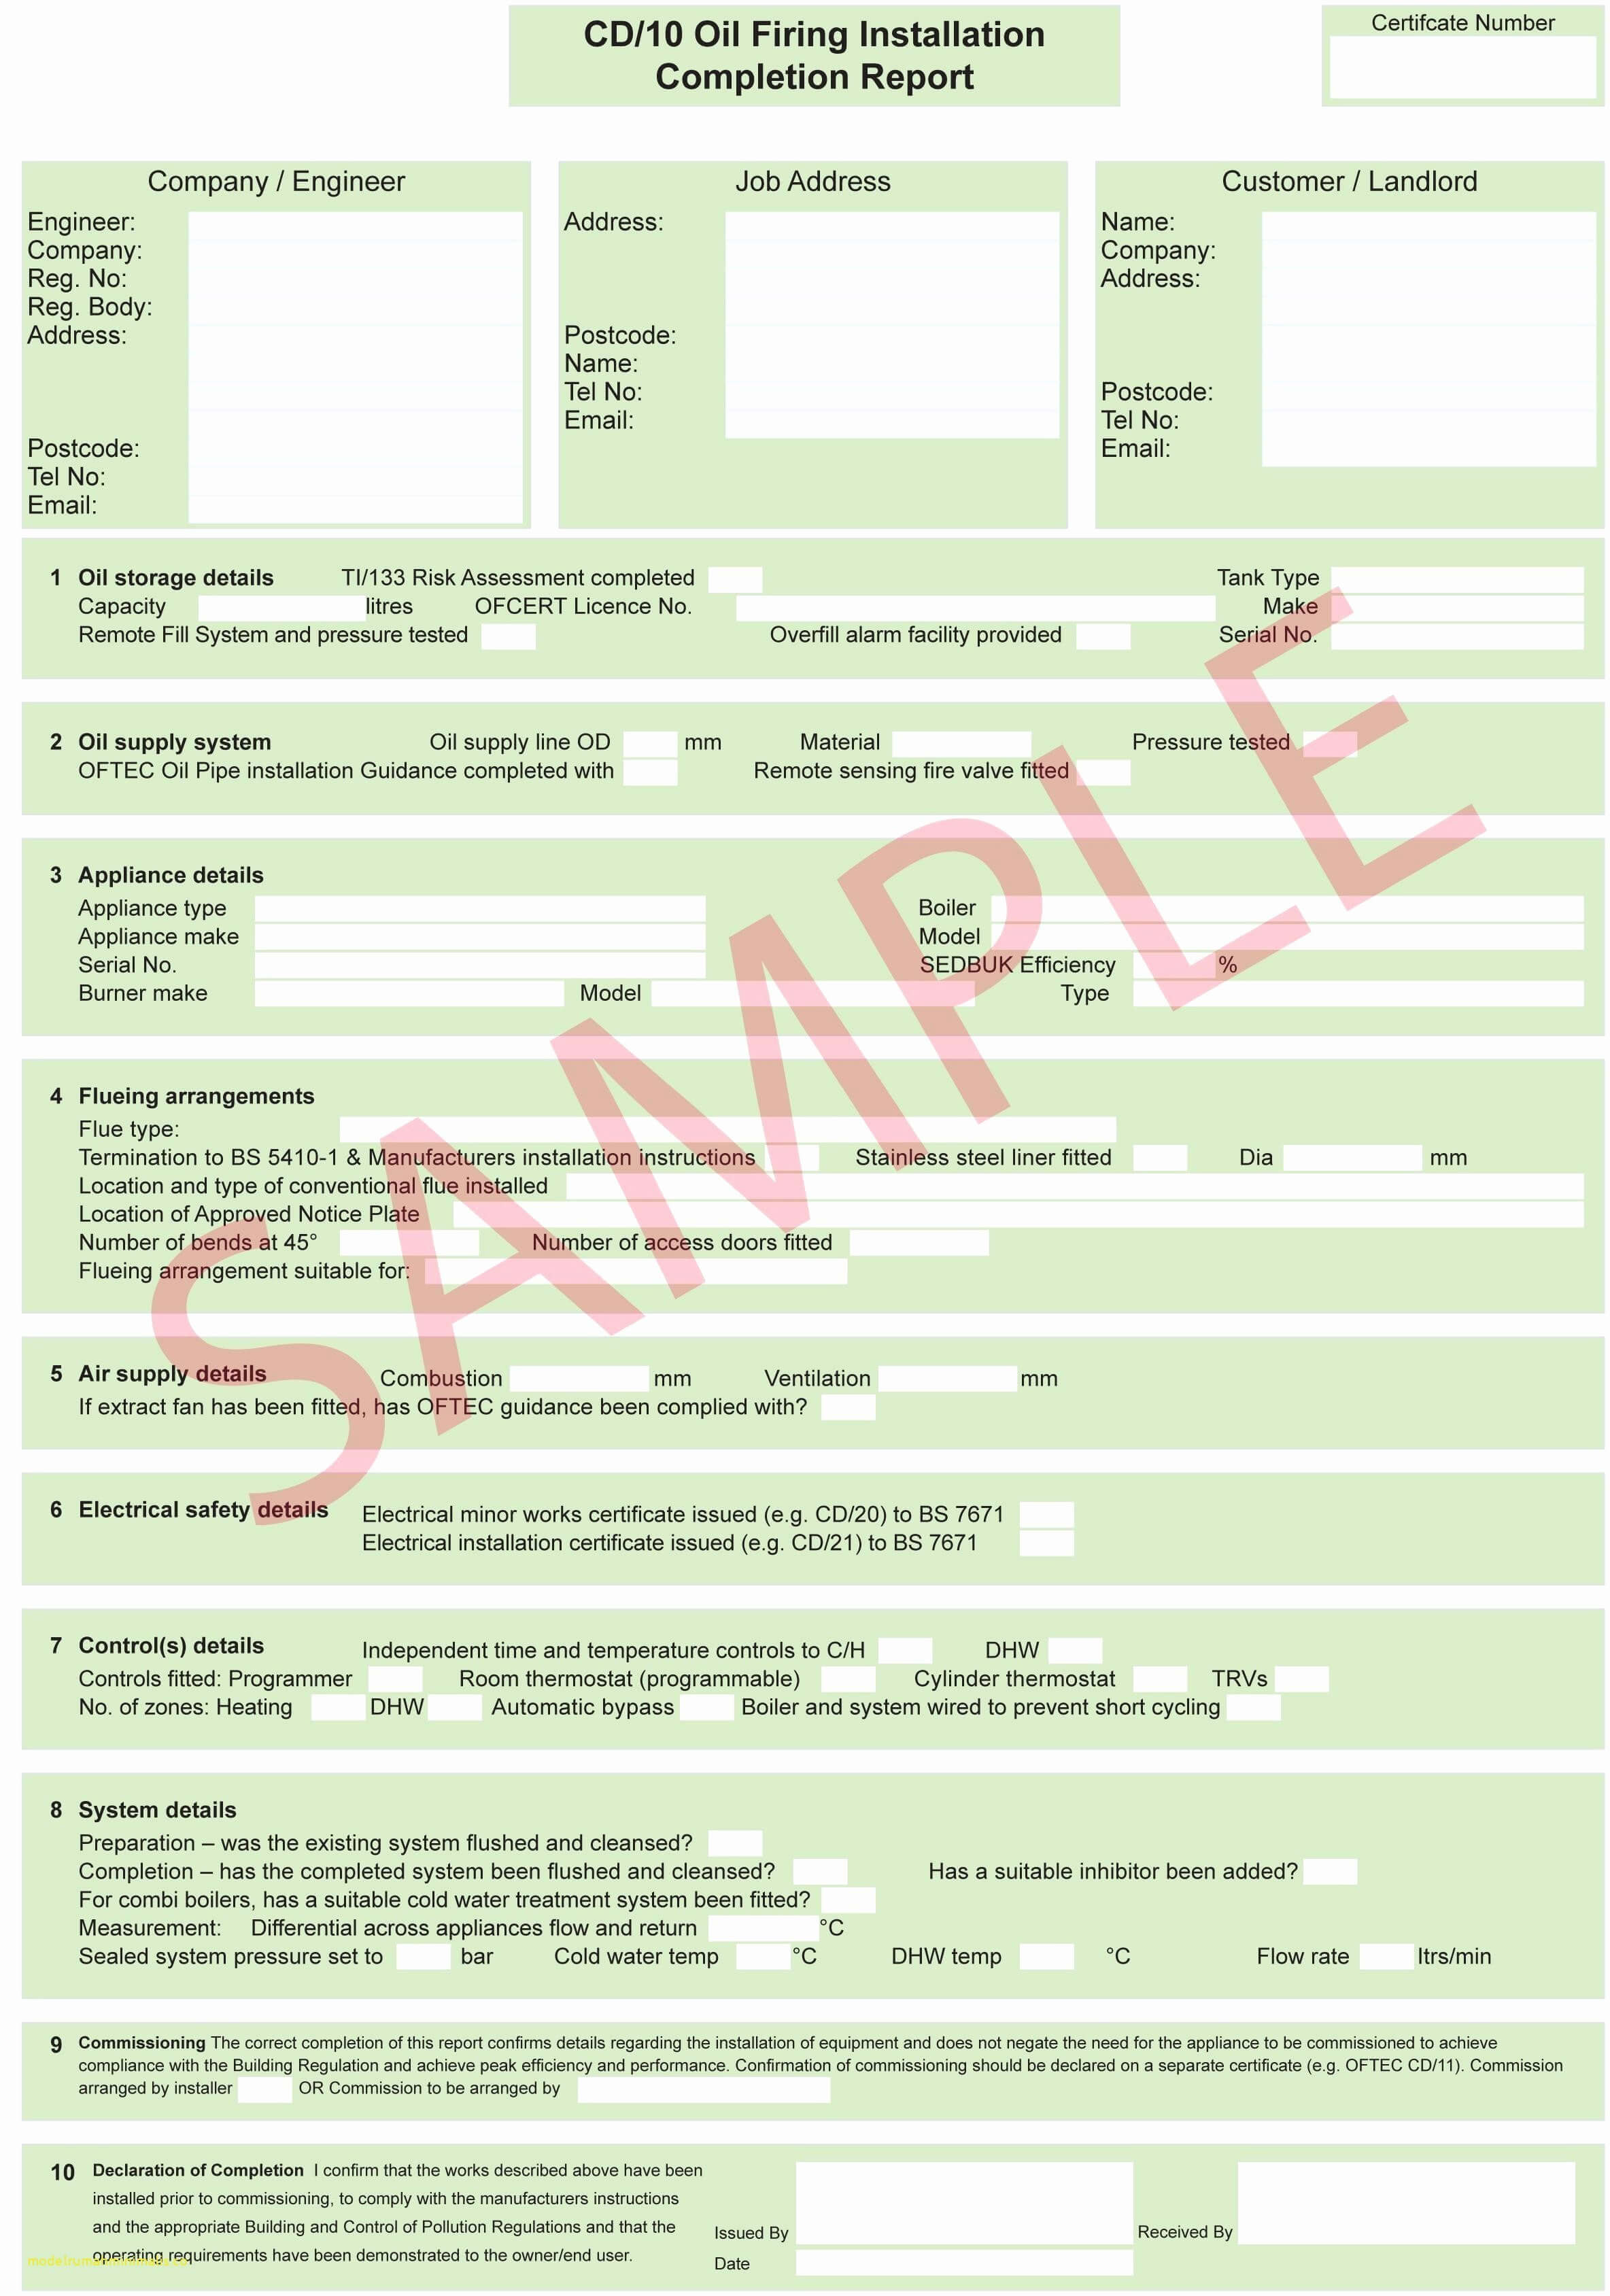 Awesome Collection For Electrical Isolation Certificate pertaining to Electrical Isolation Certificate Template